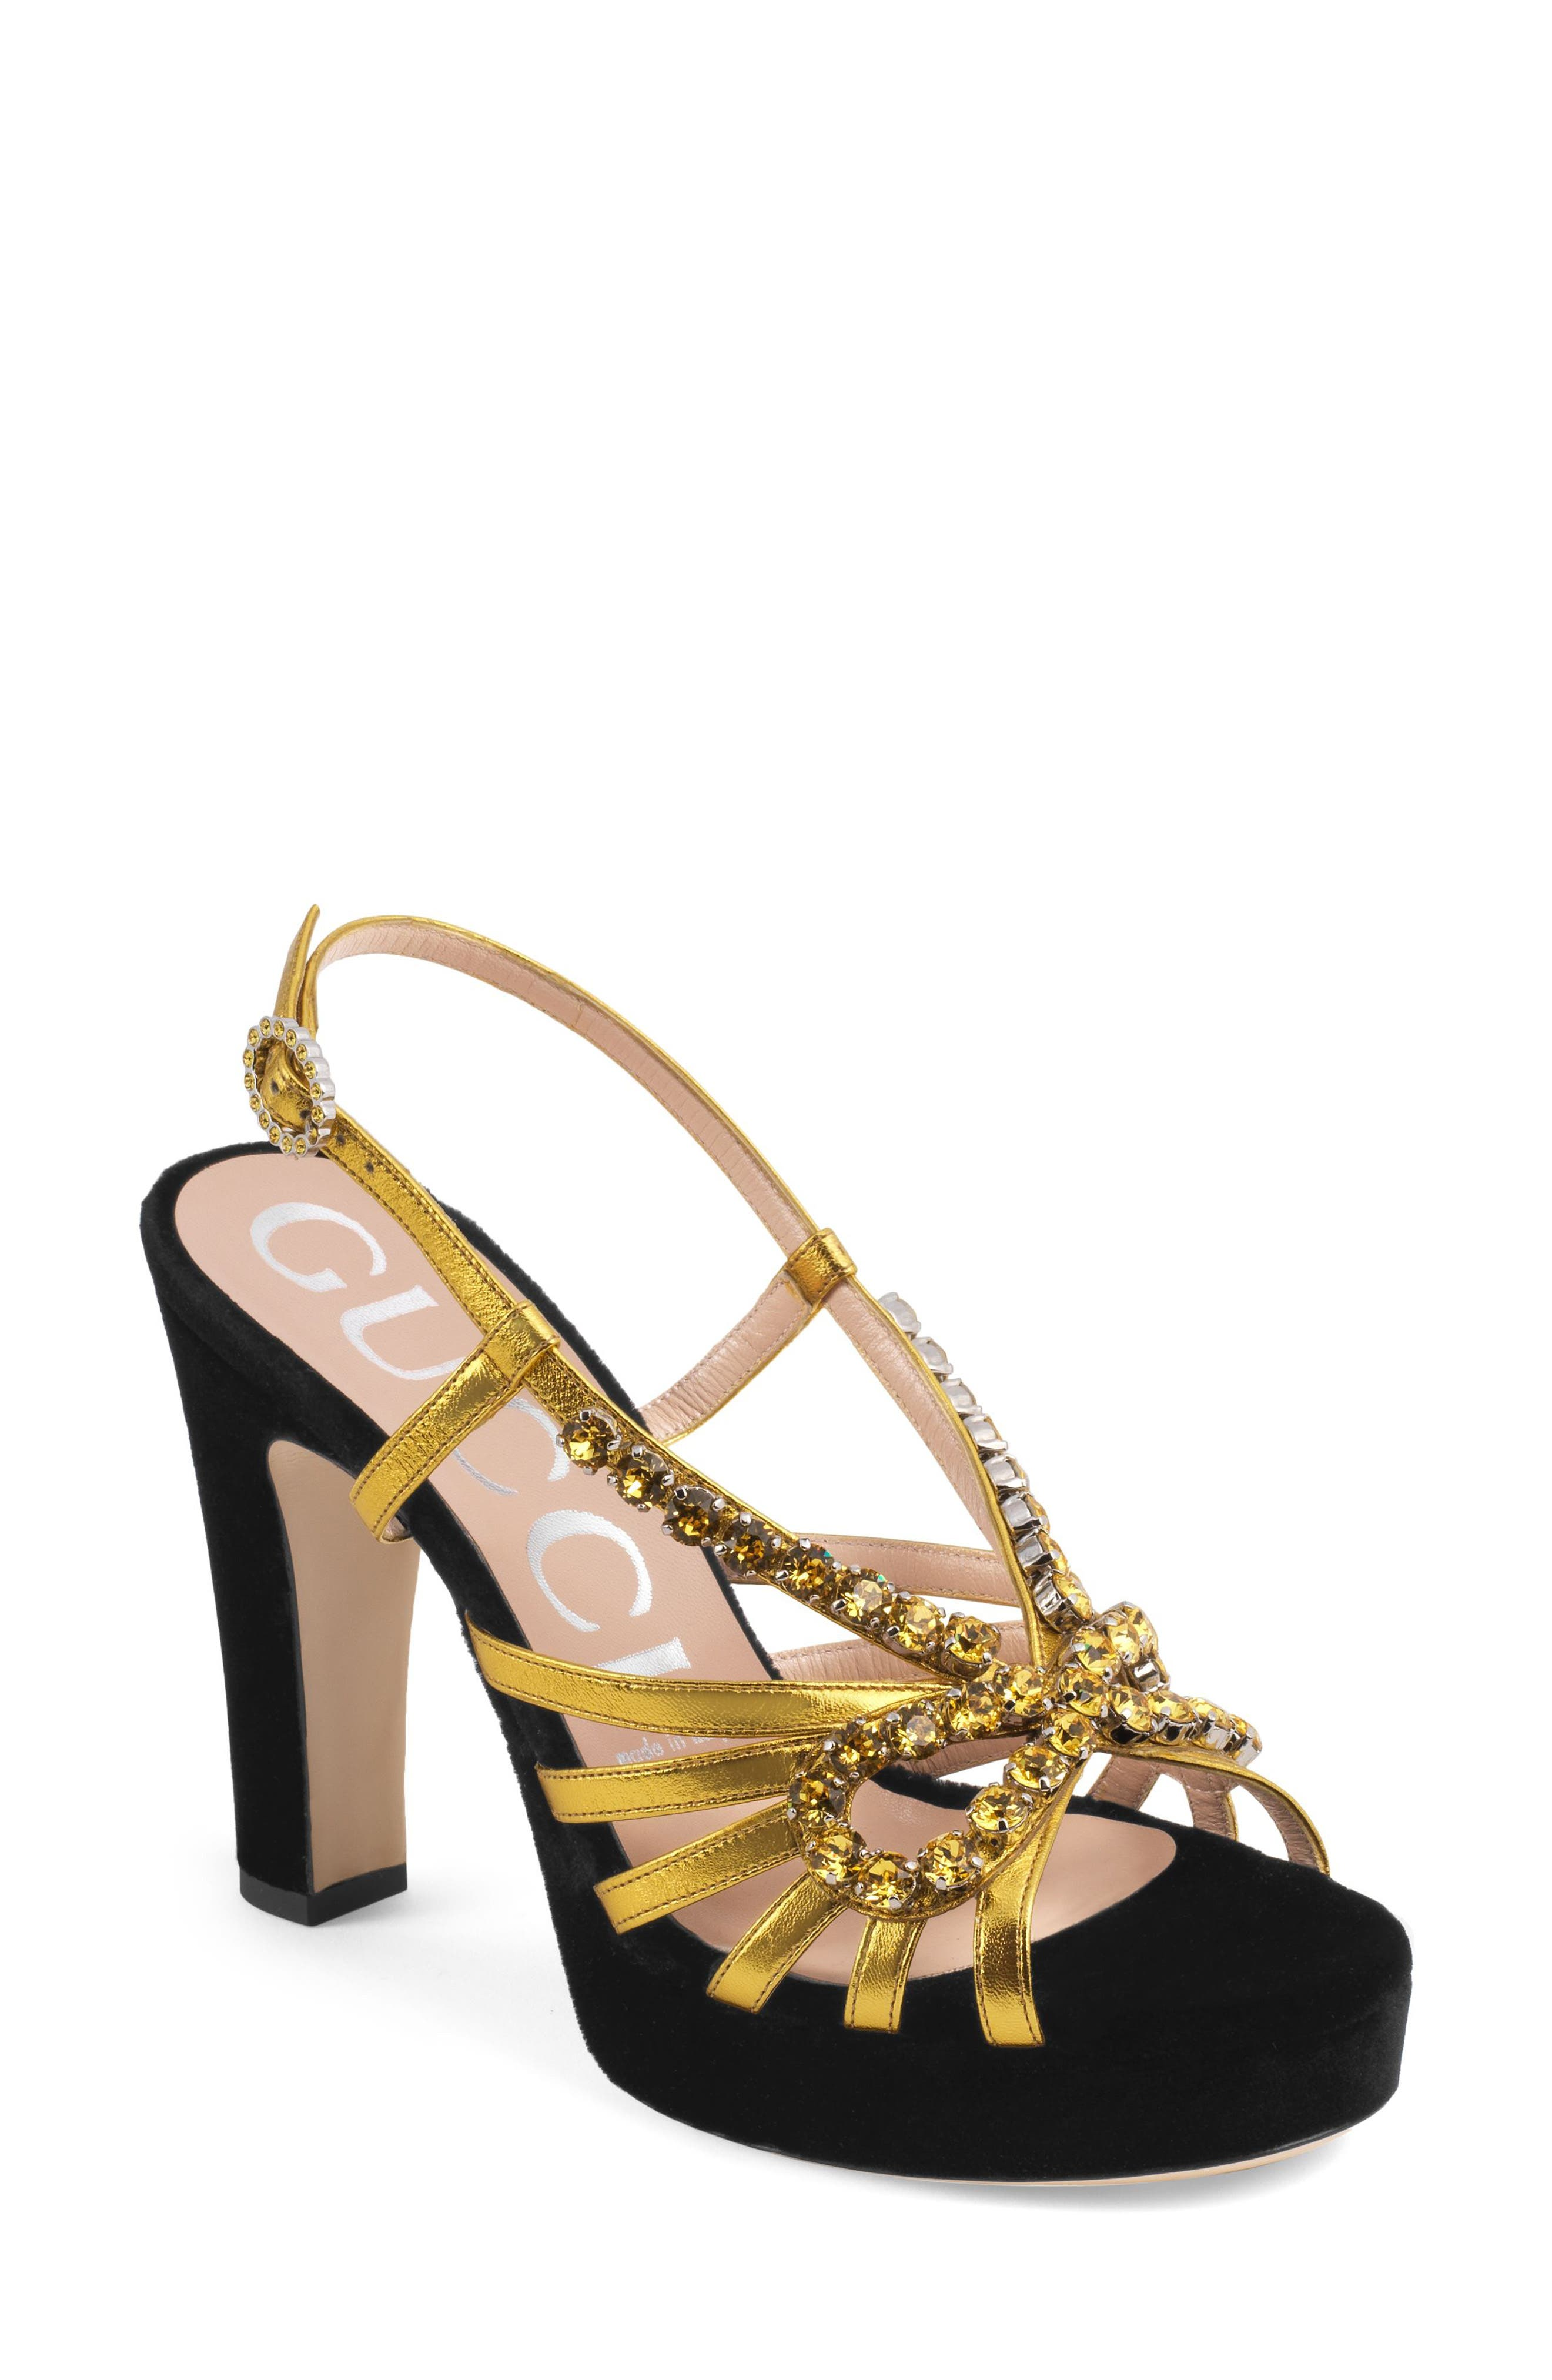 Zephyra Jewel Sandal,                             Main thumbnail 1, color,                             BLACK/ GOLD